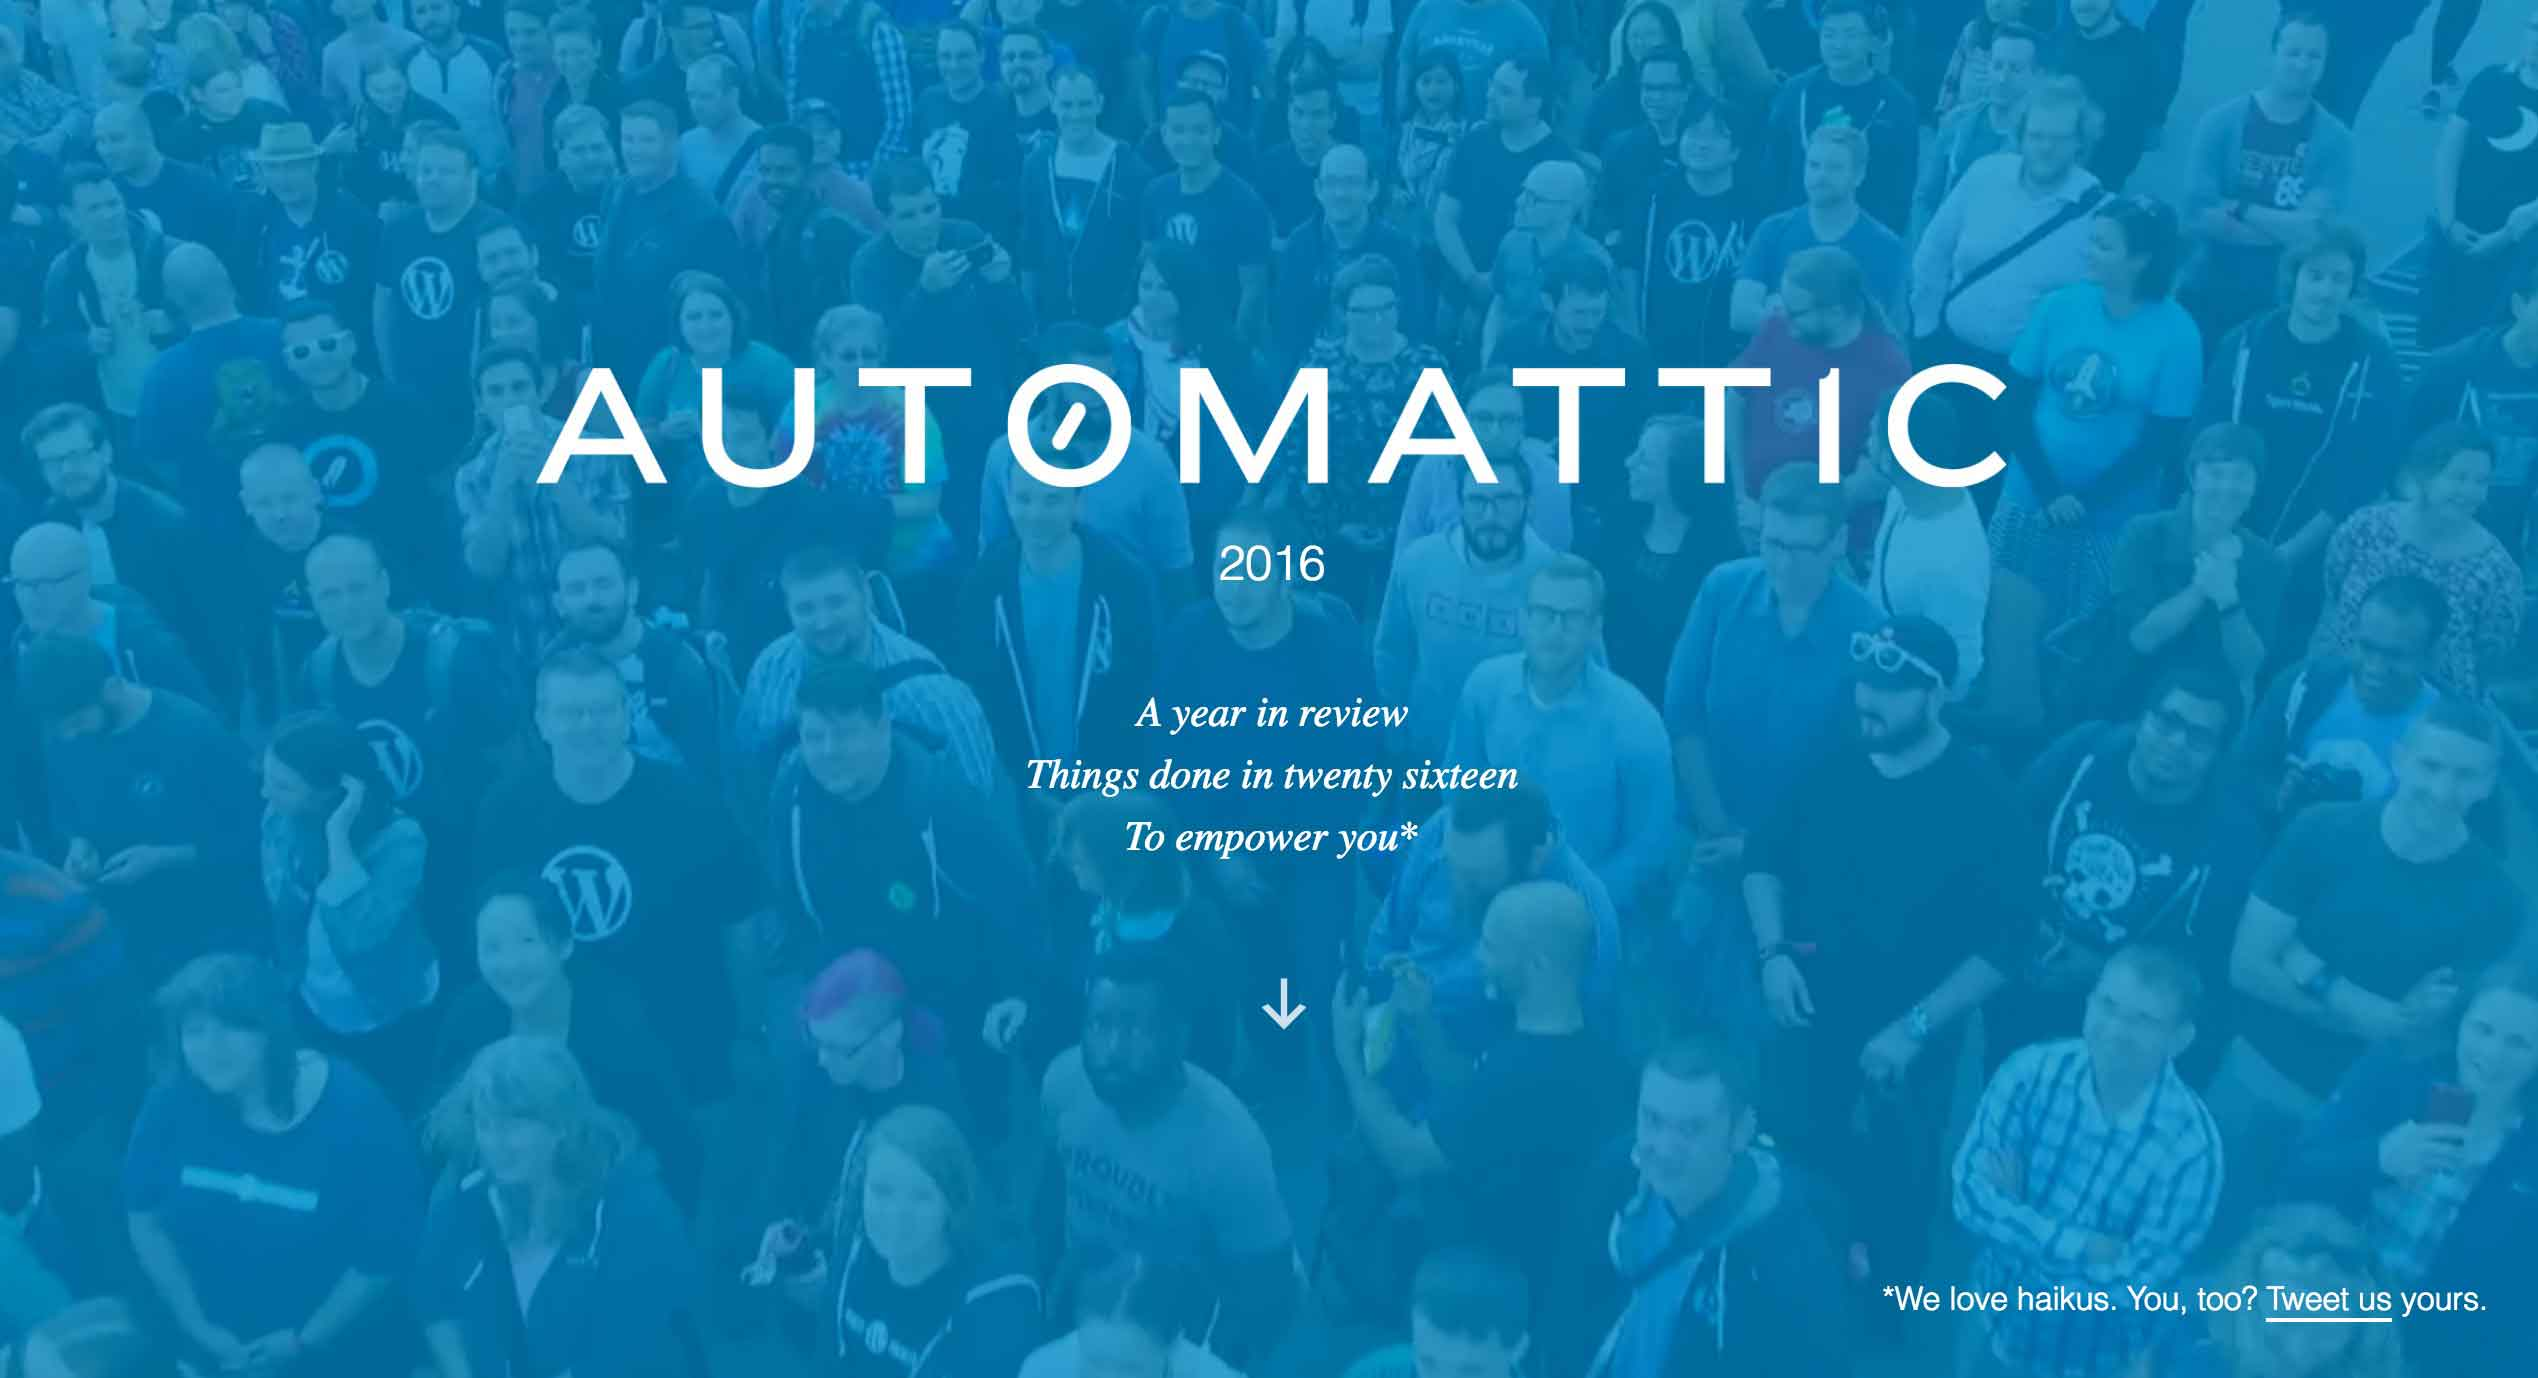 Jetpack and Automattic Annual Report